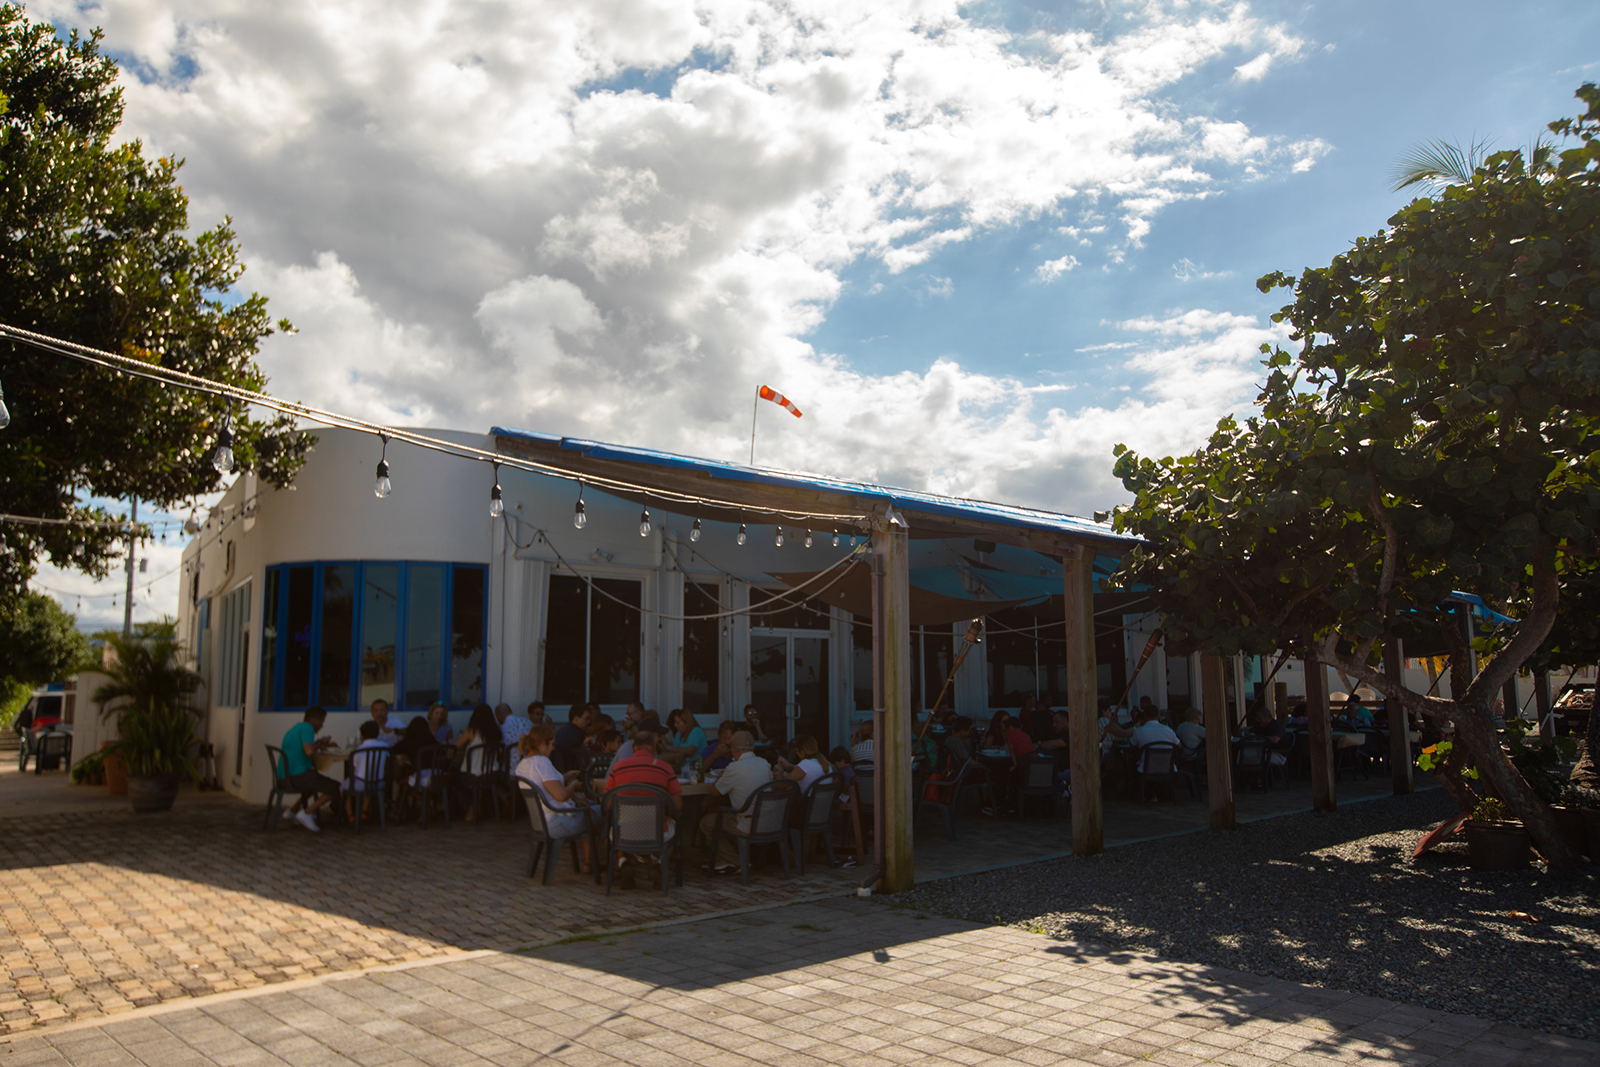 Outside view of Salitre's restaurant in Arecibo.